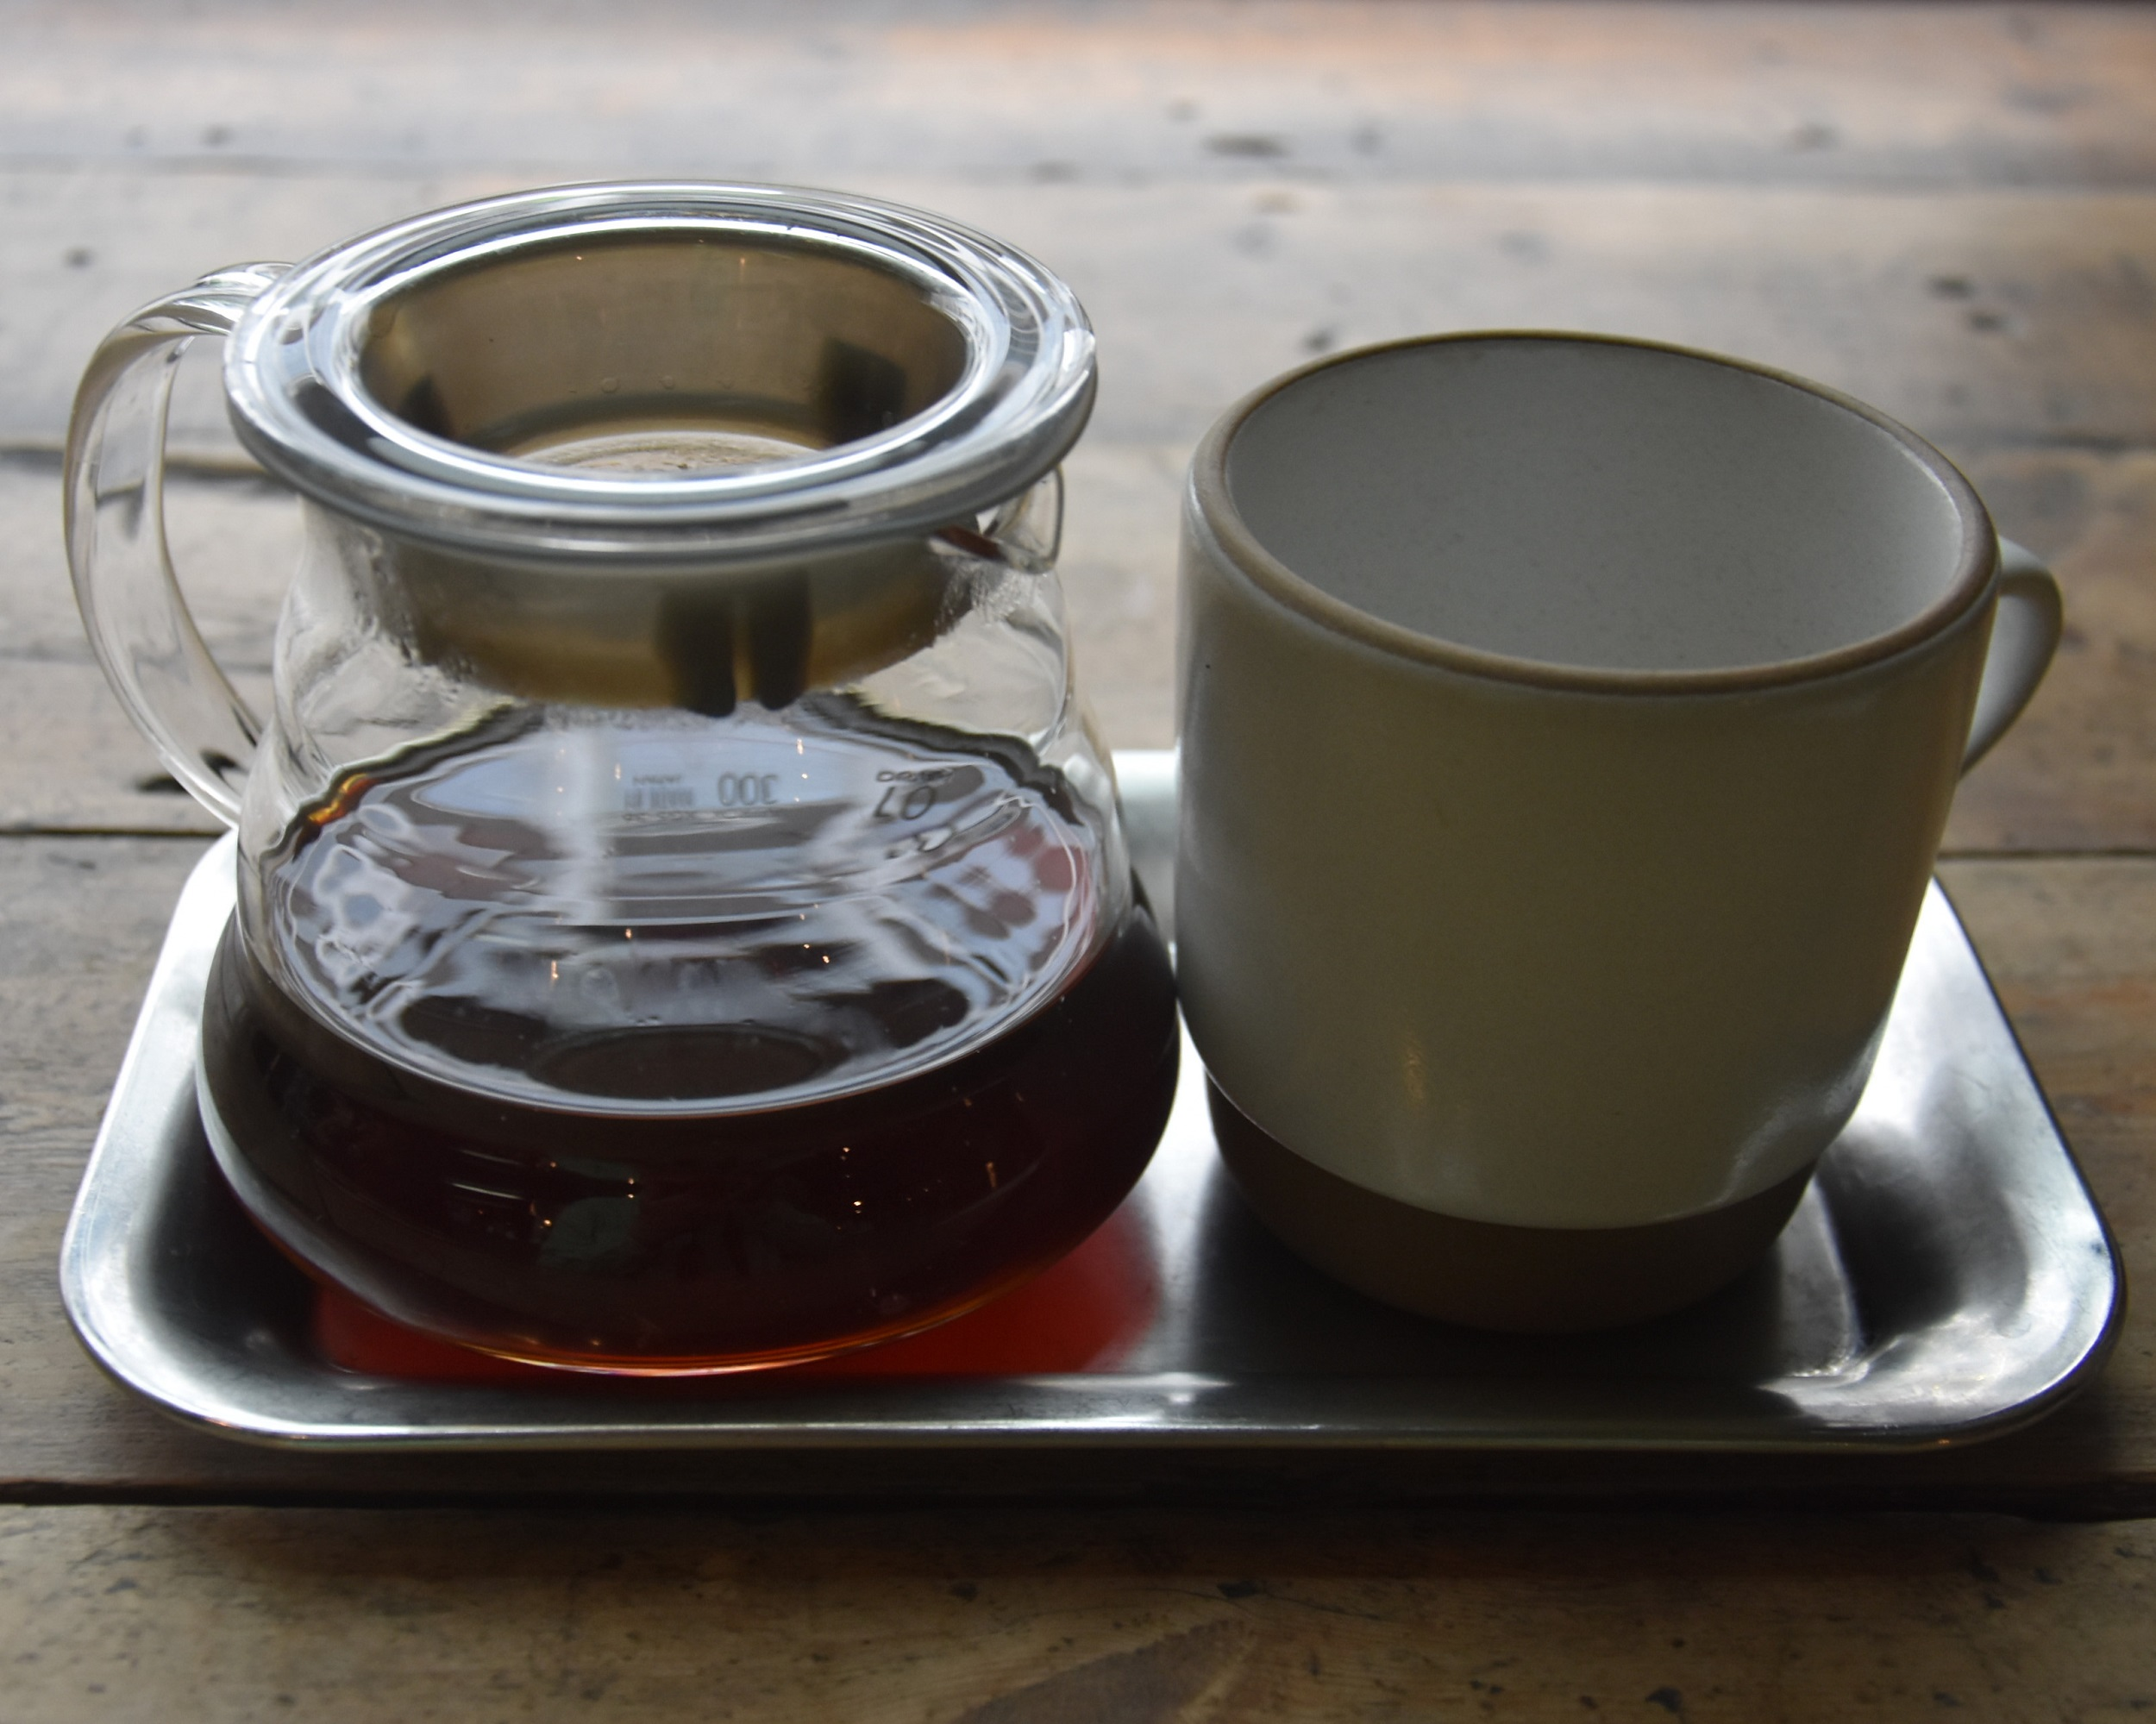 A lovely Kenyan Githaka AB Estate V60, roasted and served at Ozone in Shoreditch, the coffee presented on a tray, with a short mug next to the carafe.